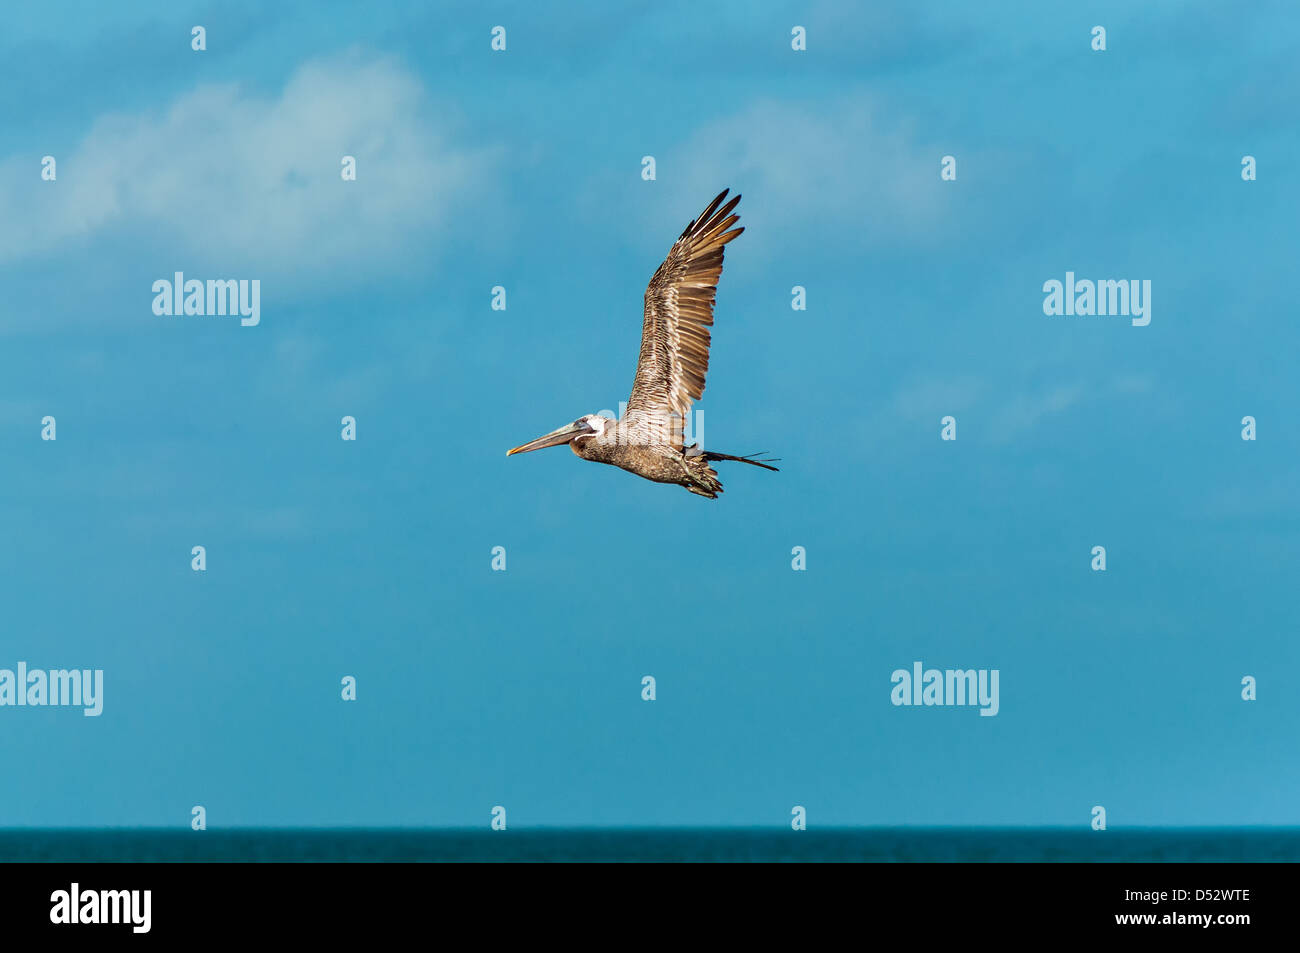 A pelican flying set against a beautiful blue sky - Stock Image